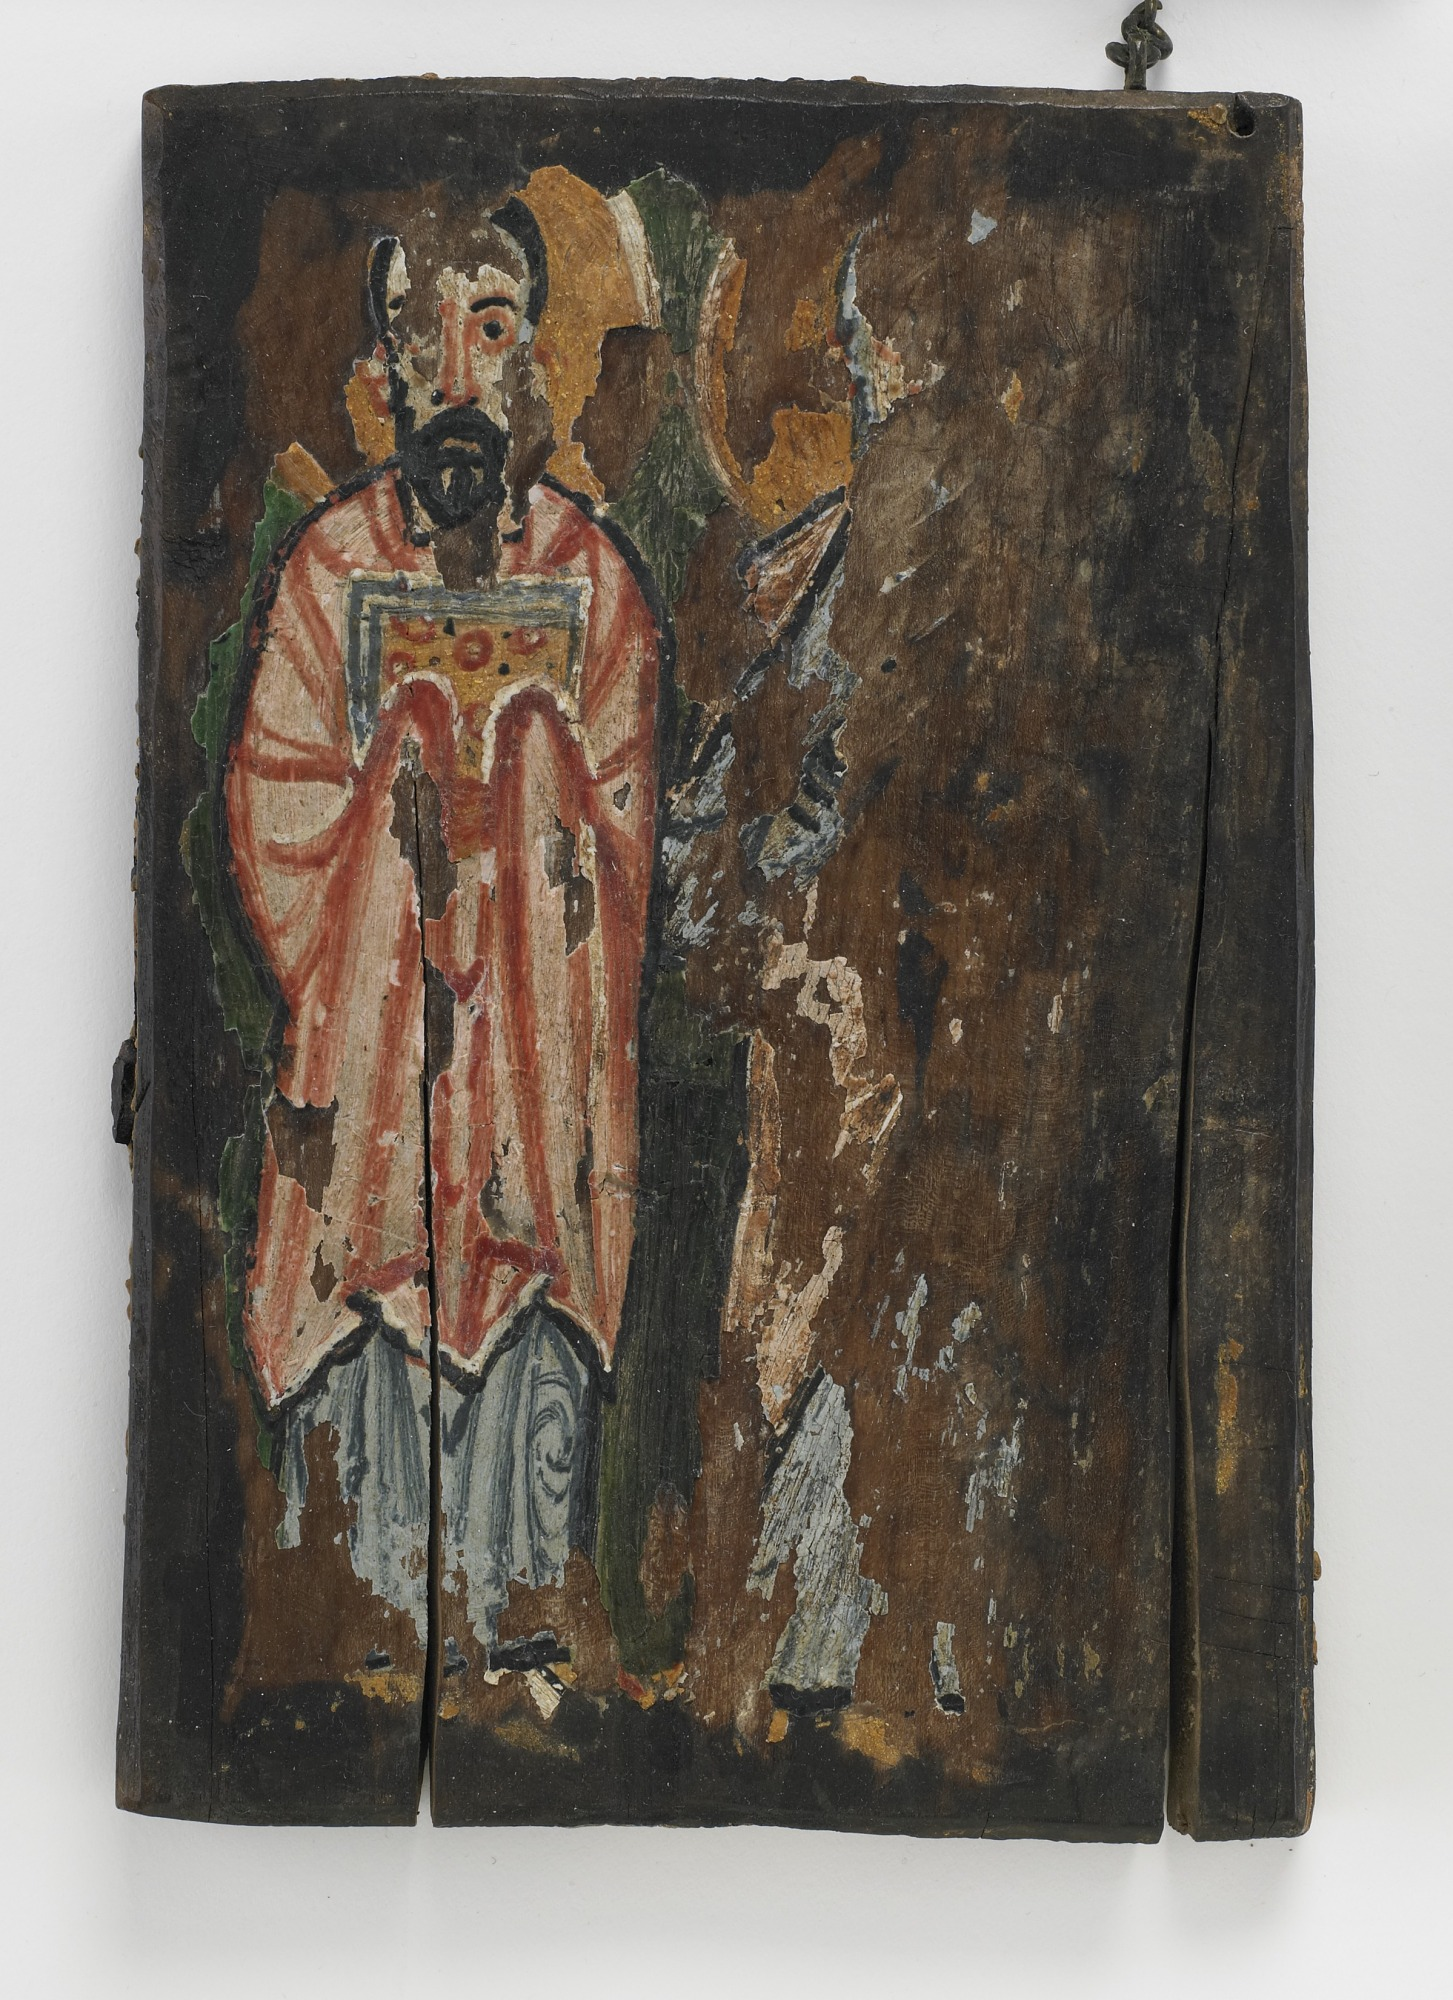 : St. Matthew and St. John; Left cover of The Washington Manuscript of the Gospels